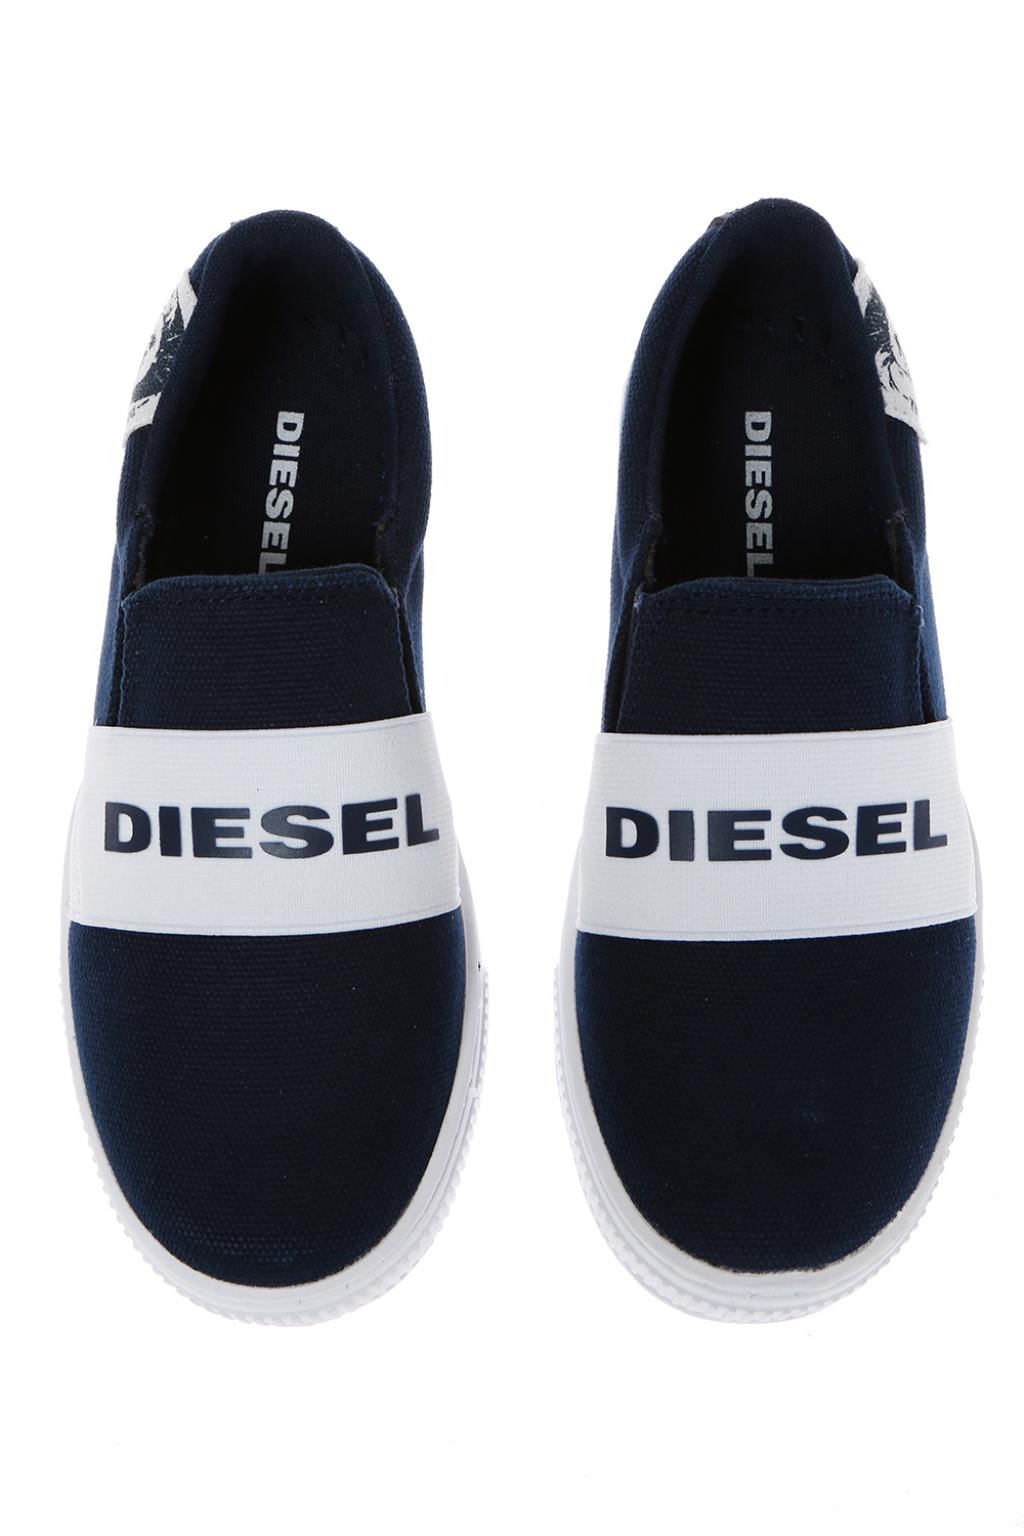 Diesel Kids Slip on shoes